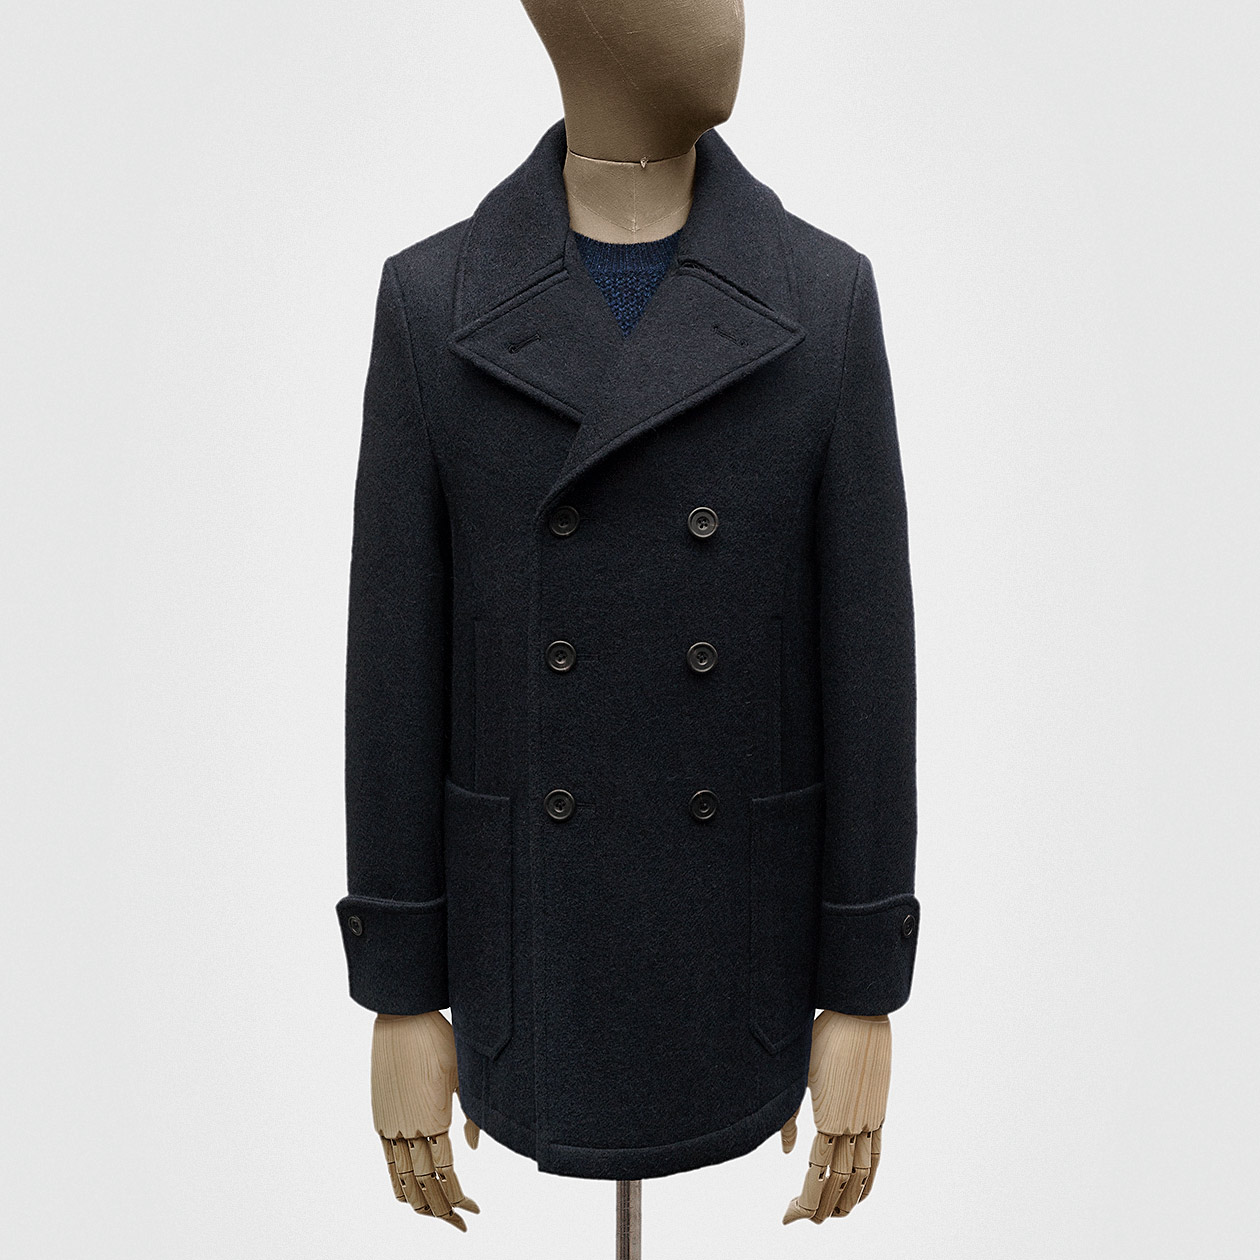 a64bfca0d13d This is a traditional sort of peacoat on the face of it